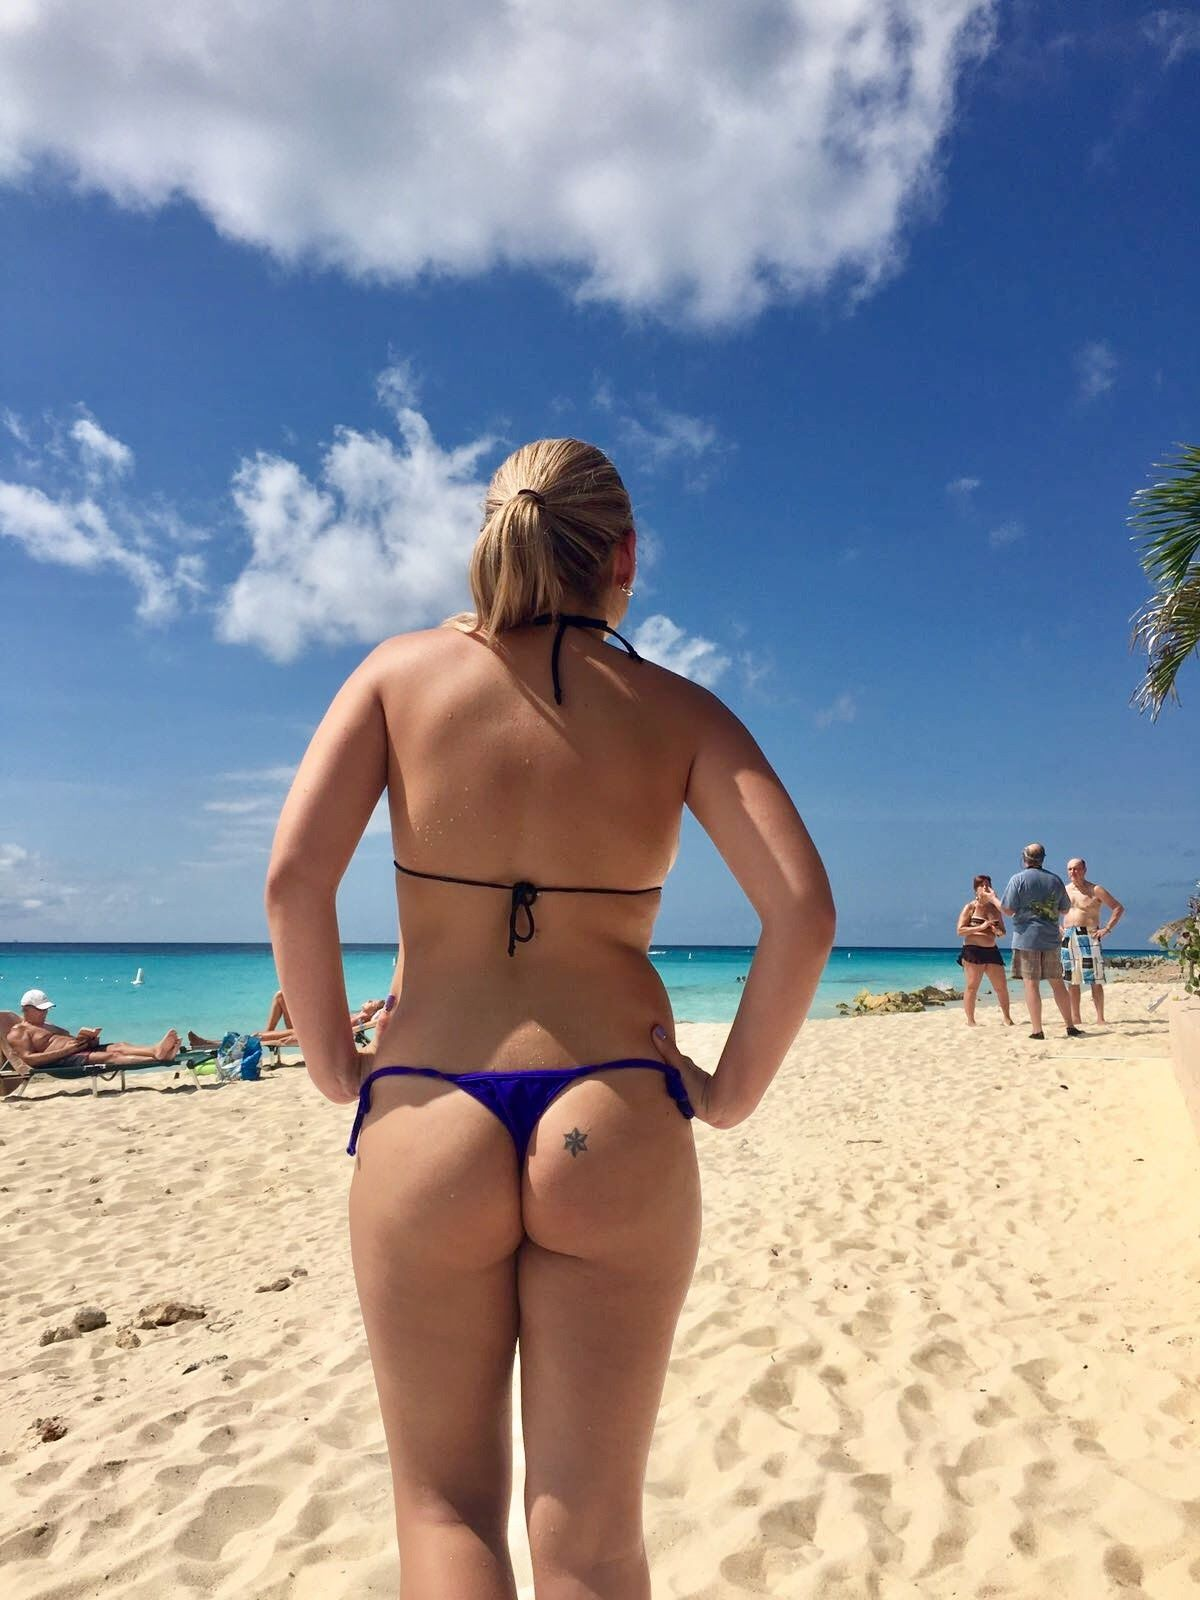 Thong Bikini On Beach